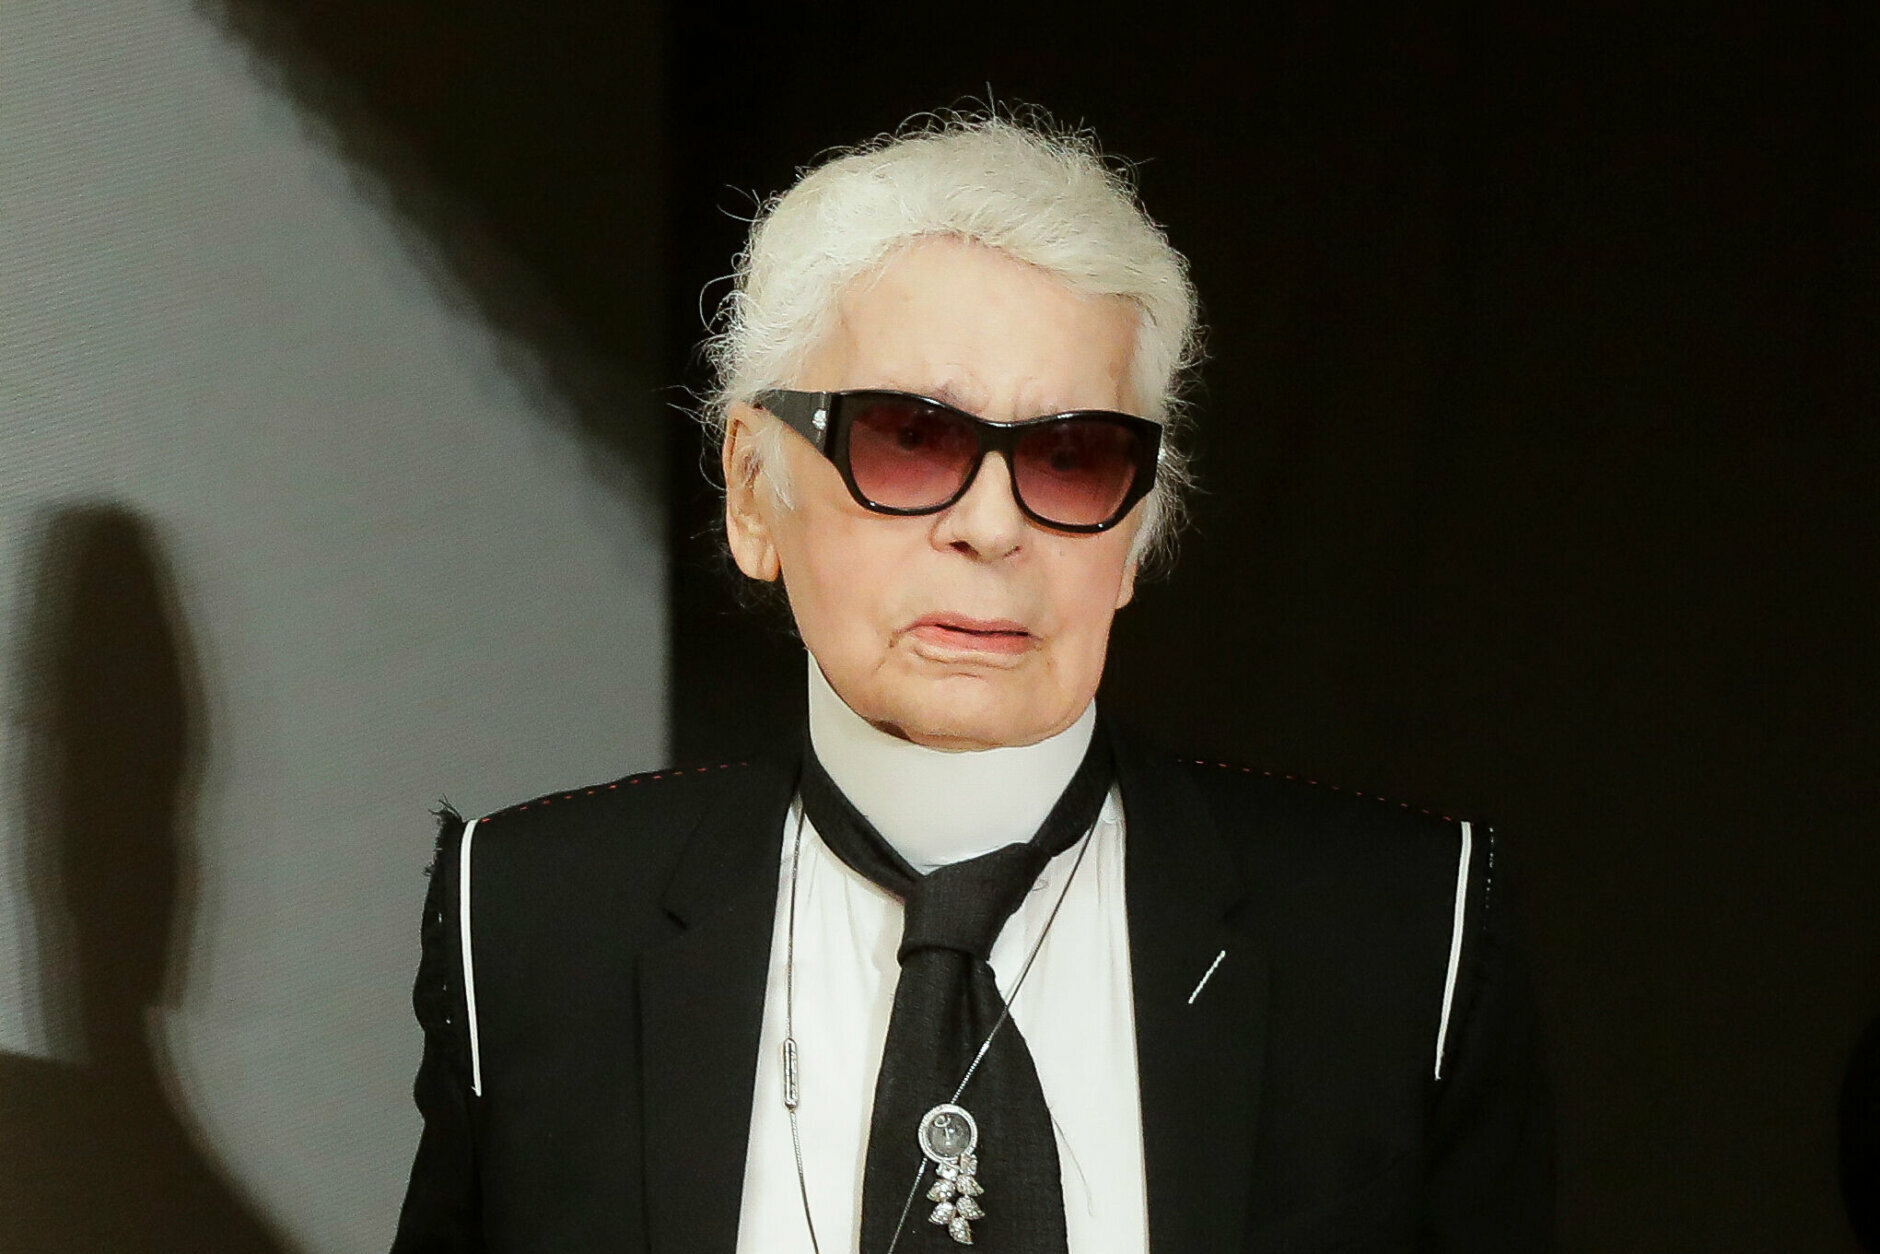 <p><strong>February 19: Karl Lagerfeld at age 85</strong></p>